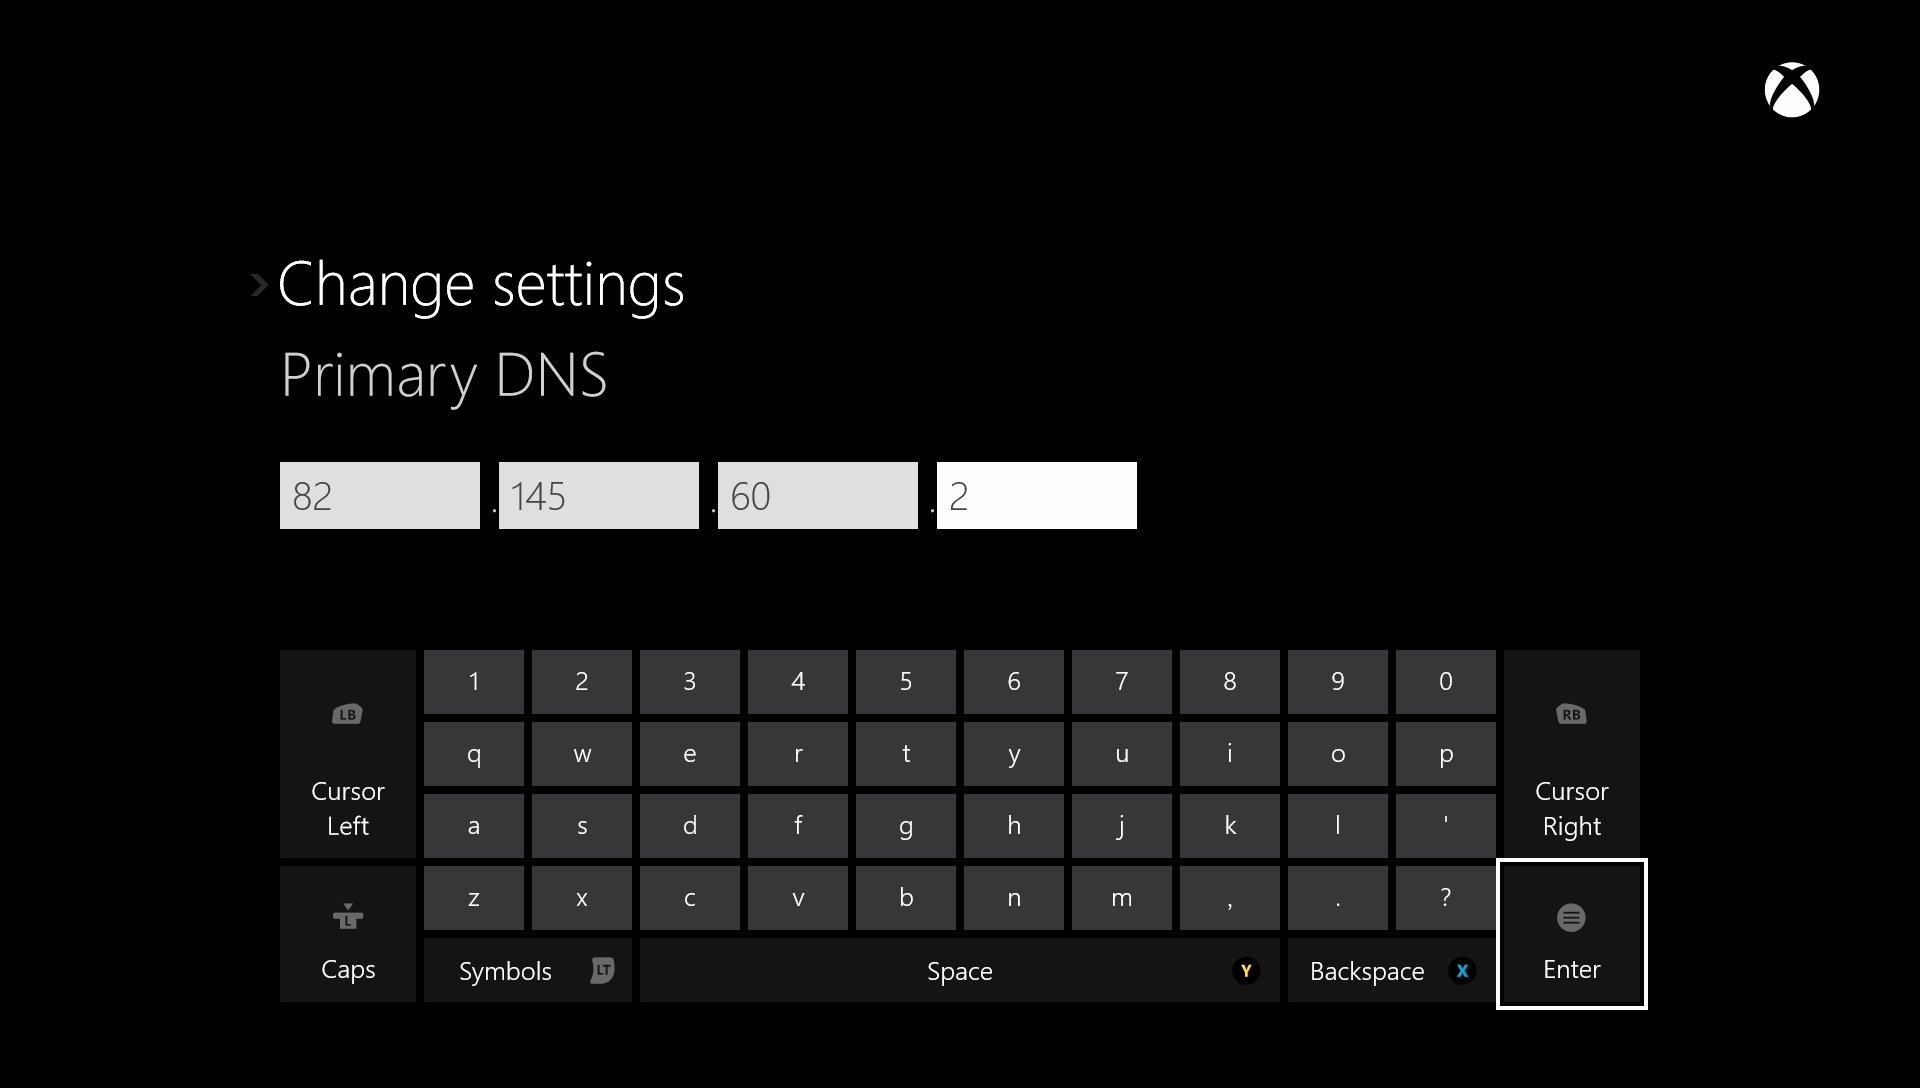 Microsoft Xbox One Primary DNS Settings